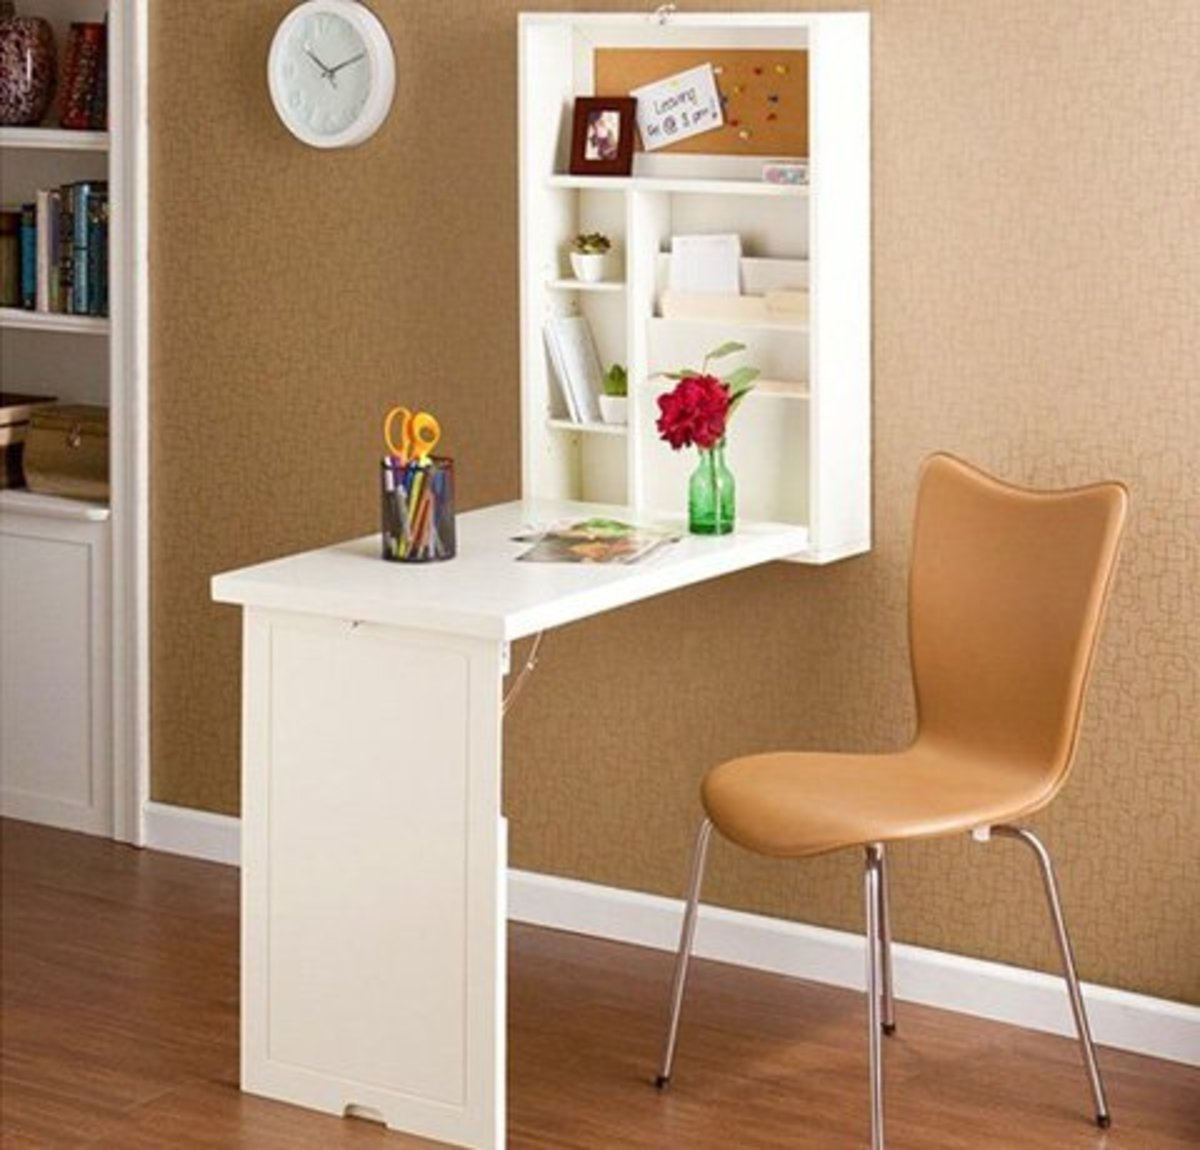 Foldout Desk | Easy Organization Ideas for the Home